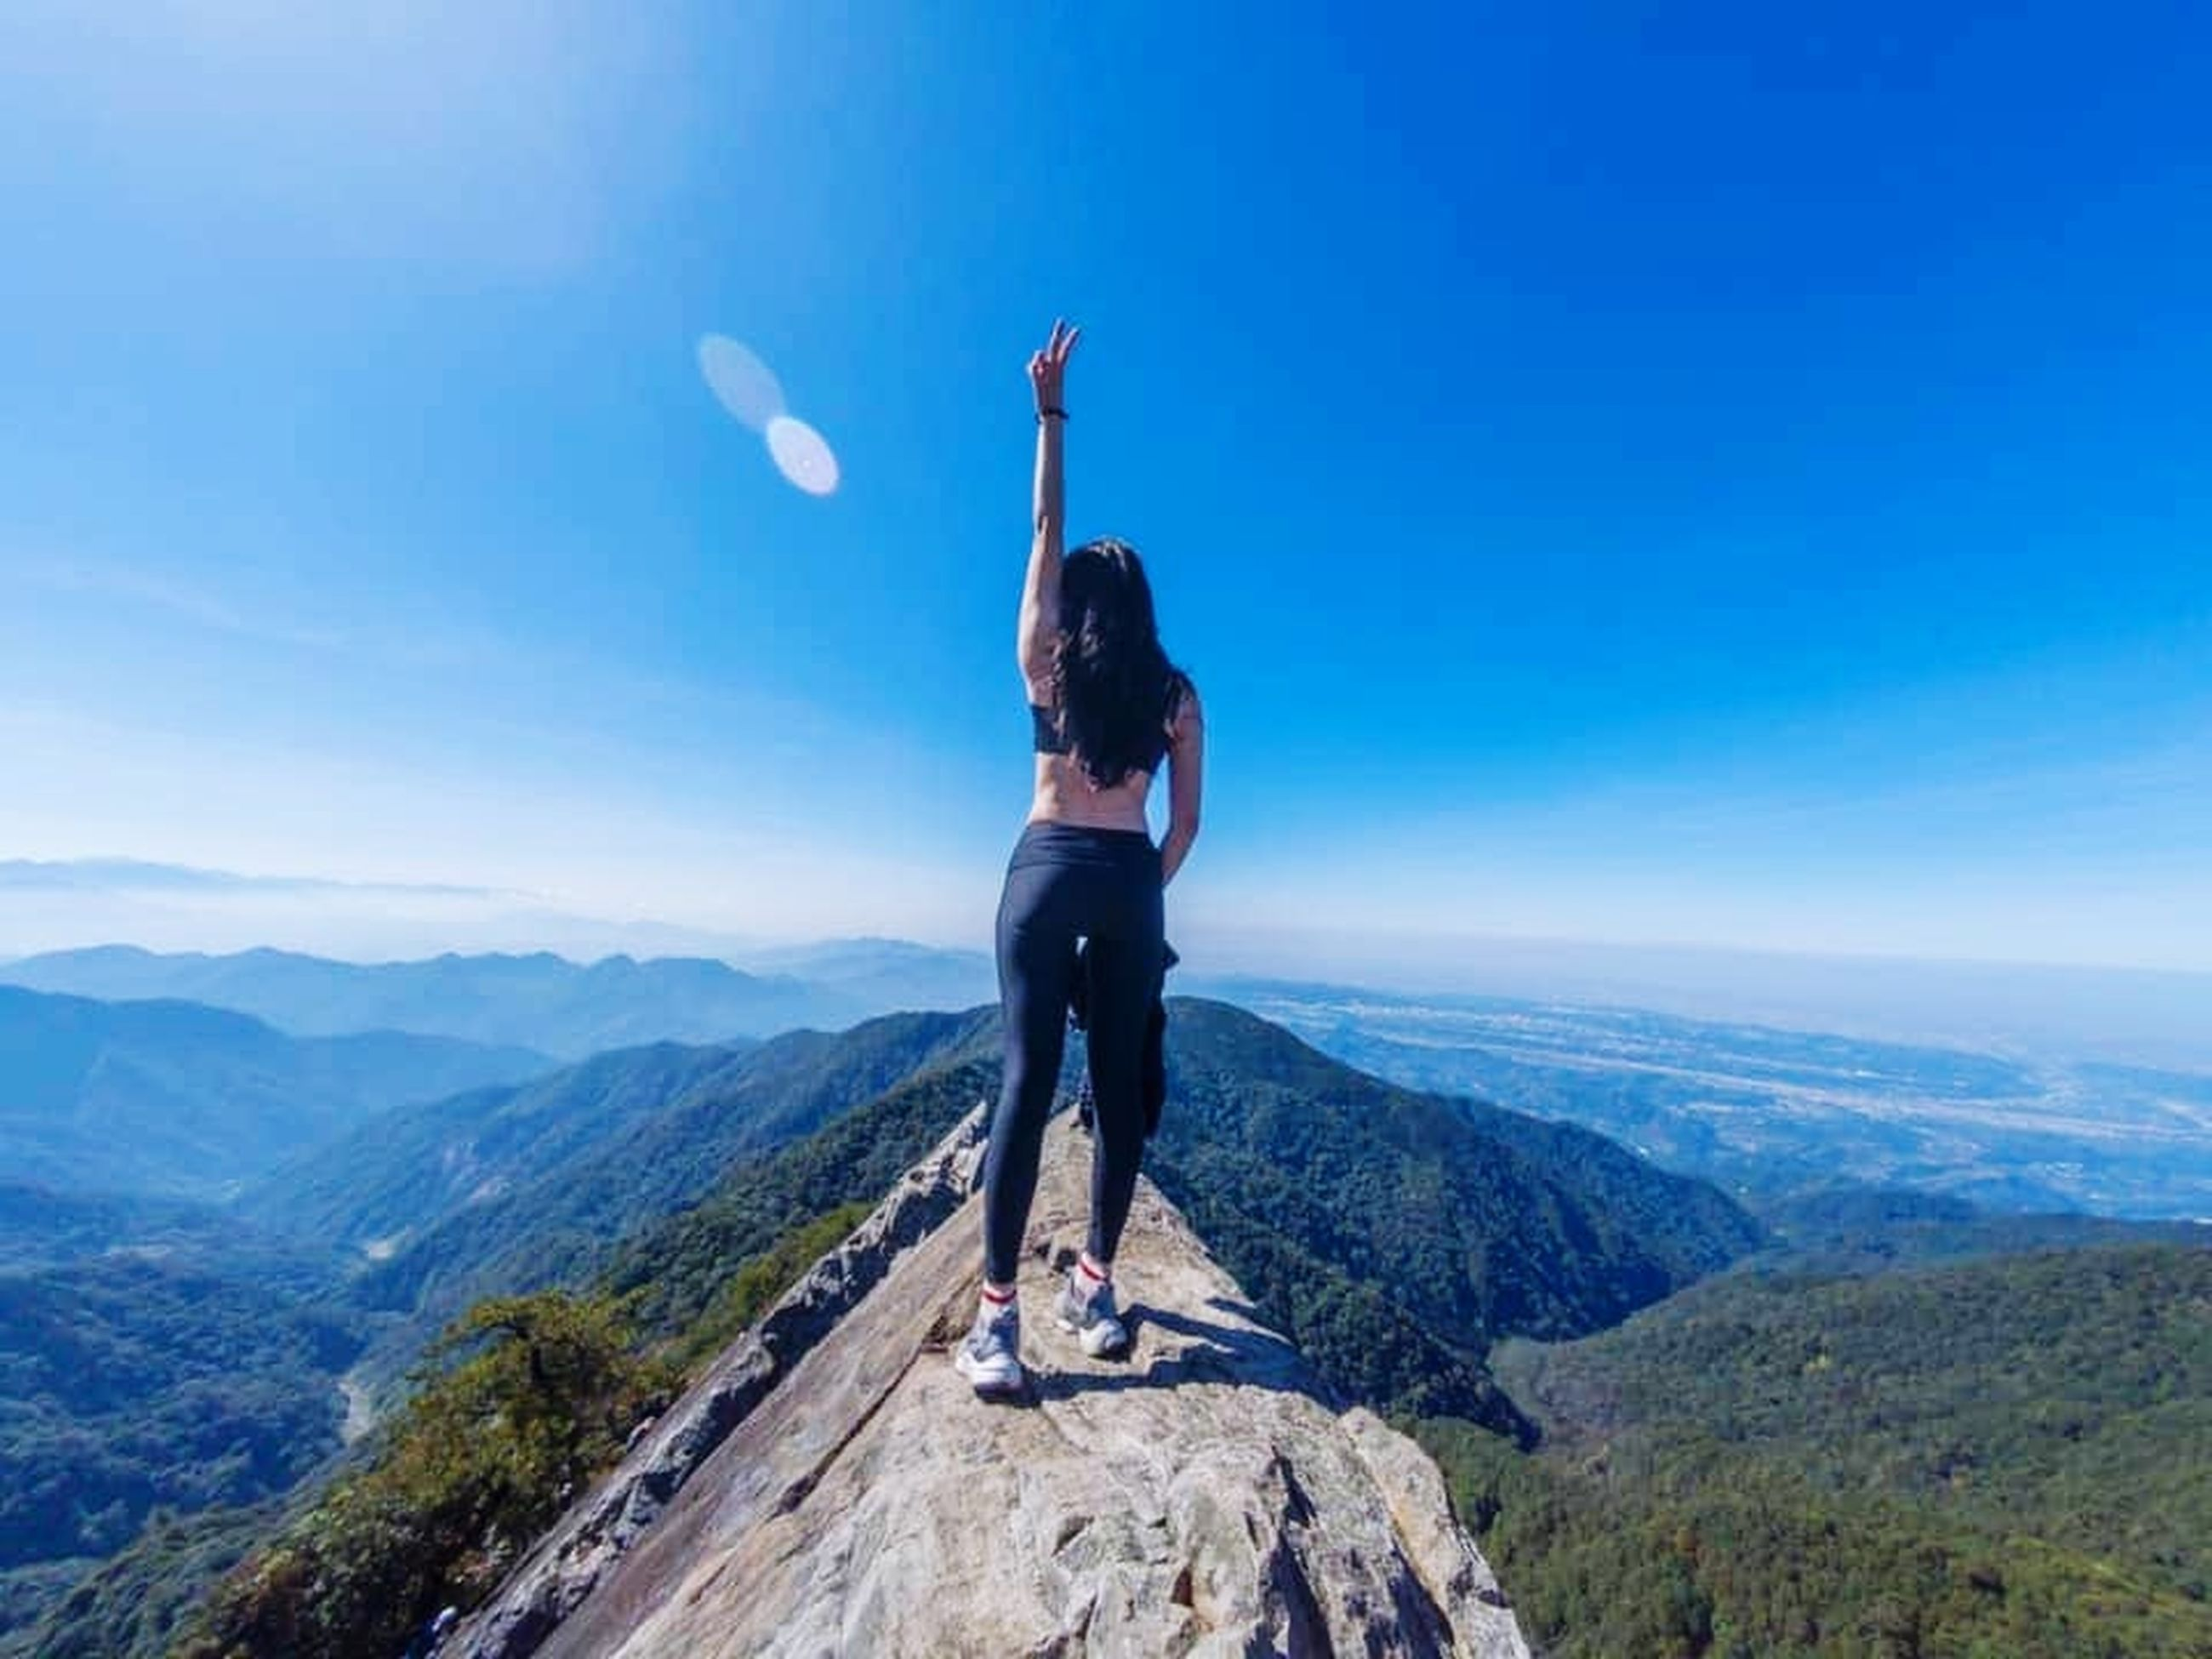 mountain, one person, sky, scenics - nature, adult, leisure activity, nature, beauty in nature, adventure, environment, landscape, mountain range, full length, sports, activity, tranquility, lifestyles, tranquil scene, arm, extreme sports, blue, women, mountaineering, young adult, hiking, vacation, day, travel, limb, trip, rock, holiday, standing, vitality, exercising, outdoors, mountain peak, achievement, non-urban scene, travel destinations, ridge, success, determination, summit, challenge, idyllic, looking at view, human limb, arms raised, copy space, land, cloud, remote, sunlight, solitude, hand, rear view, motivation, climbing, courage, clear sky, recreation, casual clothing, strength, aspirations, exploration, balance